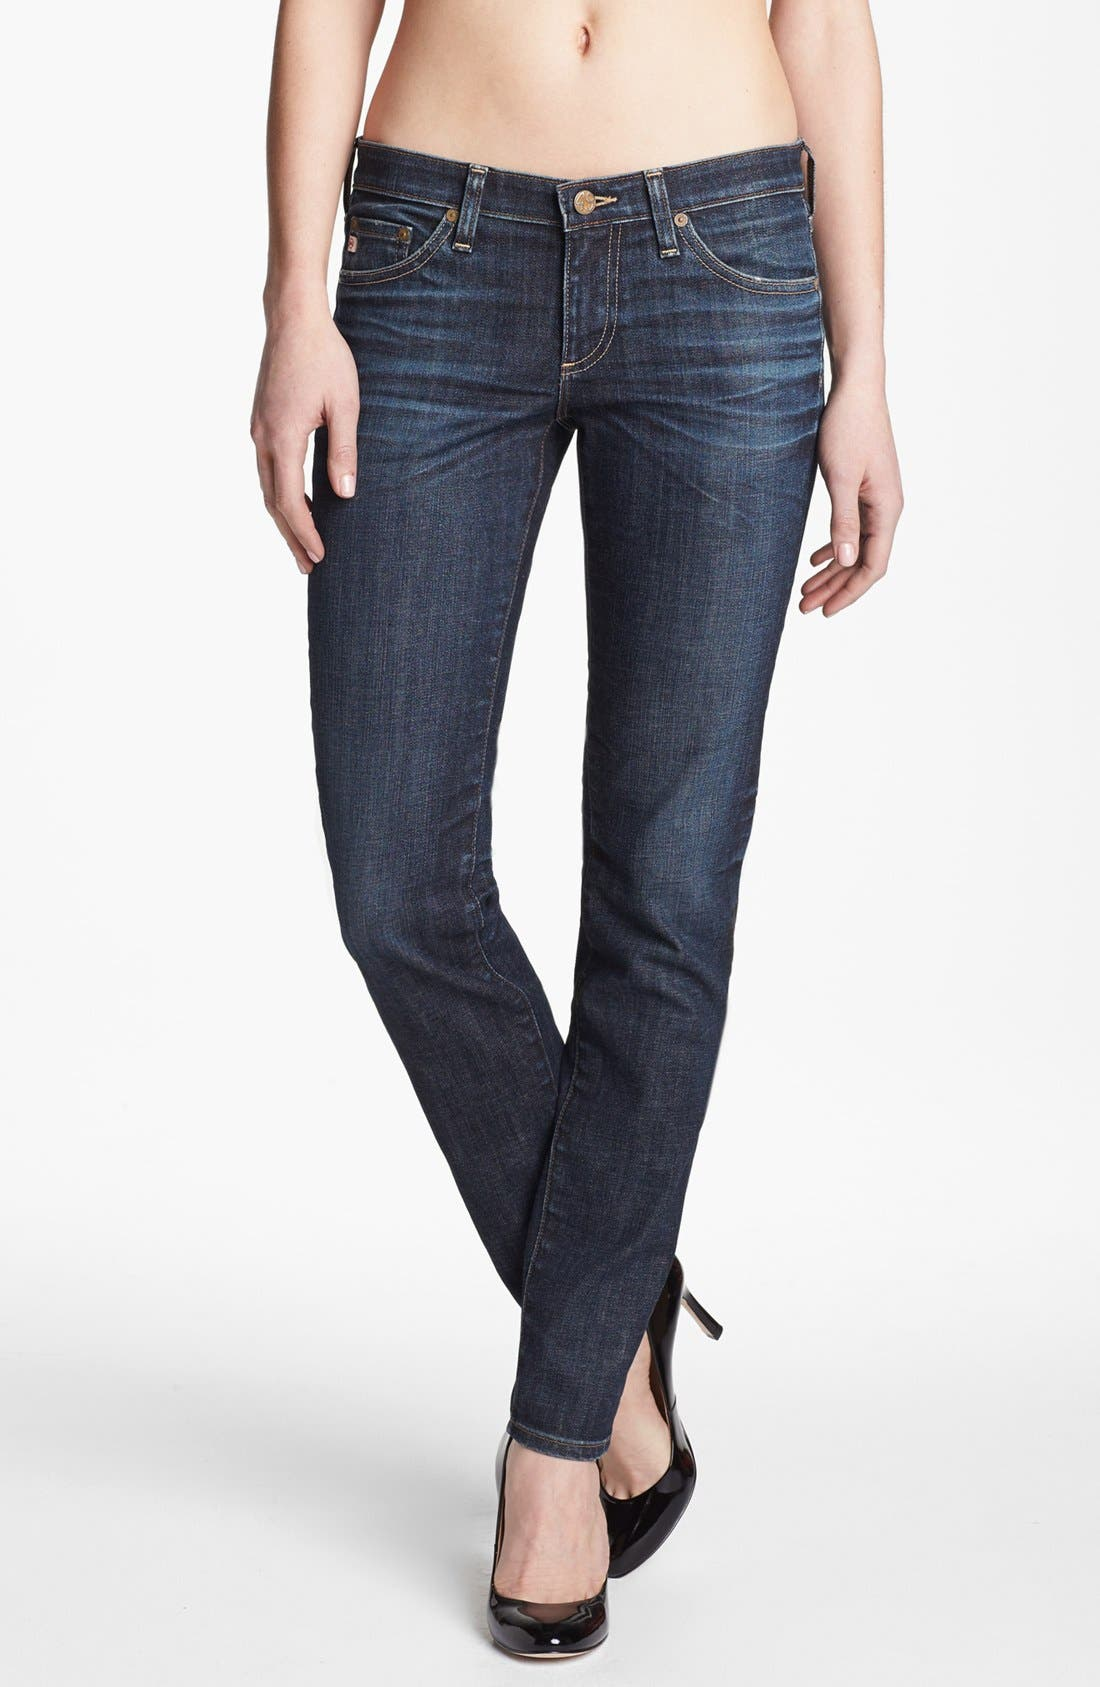 Alternate Image 1 Selected - AG 'The Stilt' Cigarette Leg Stretch Jeans (4 Year Coastline)